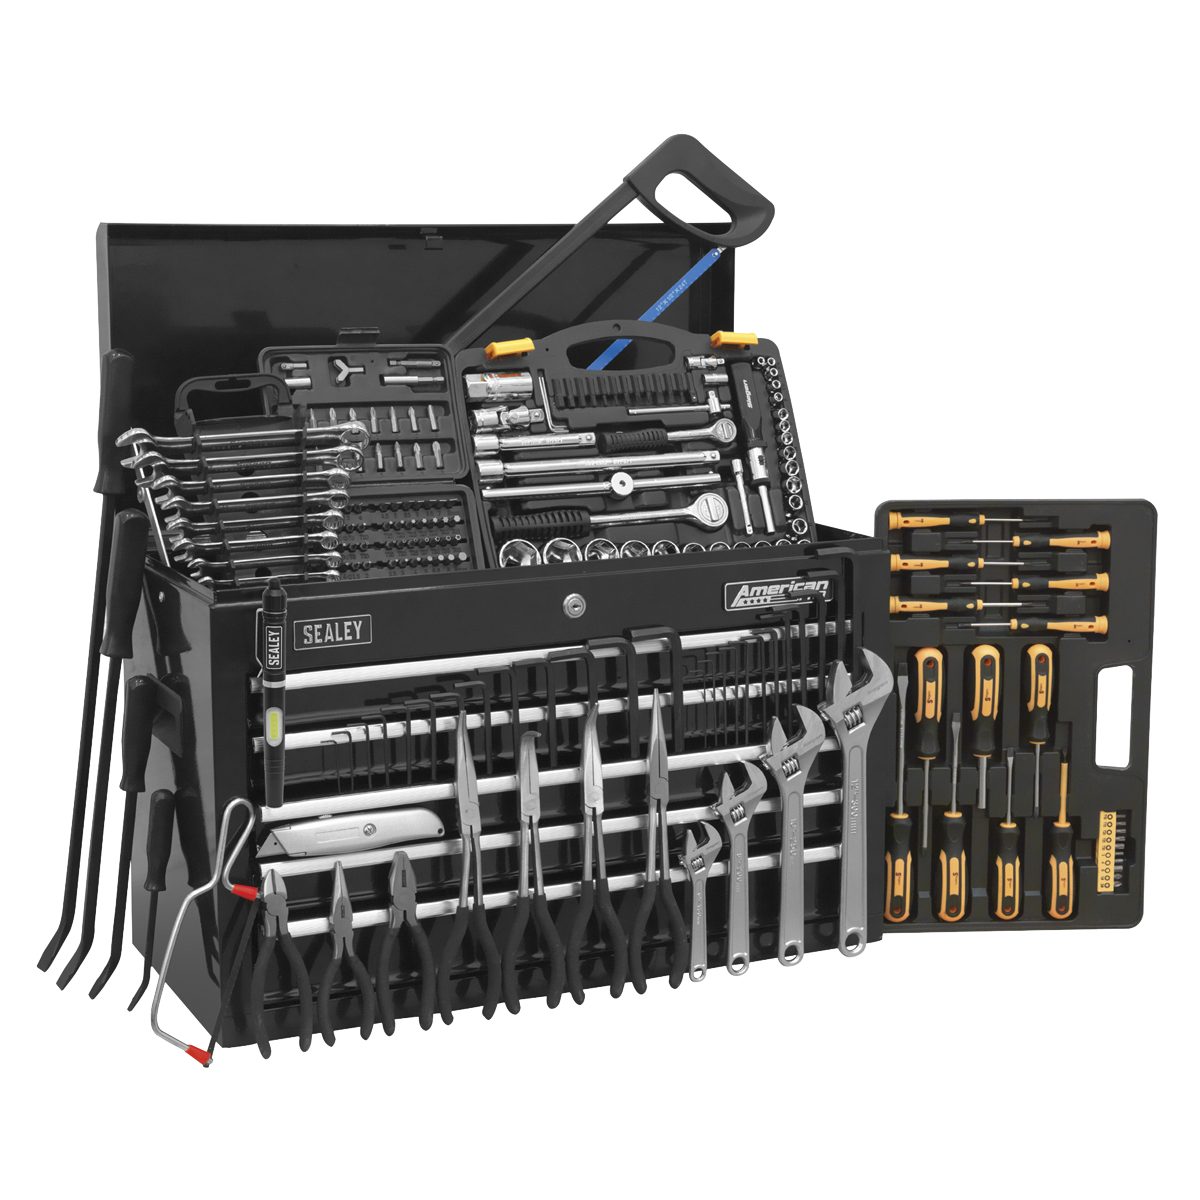 American PRO® 5 Drawer Topchest Part Number AP225B with 230pc Tool Kit. Tools included - Model No's: AK206, LED016, S0433.